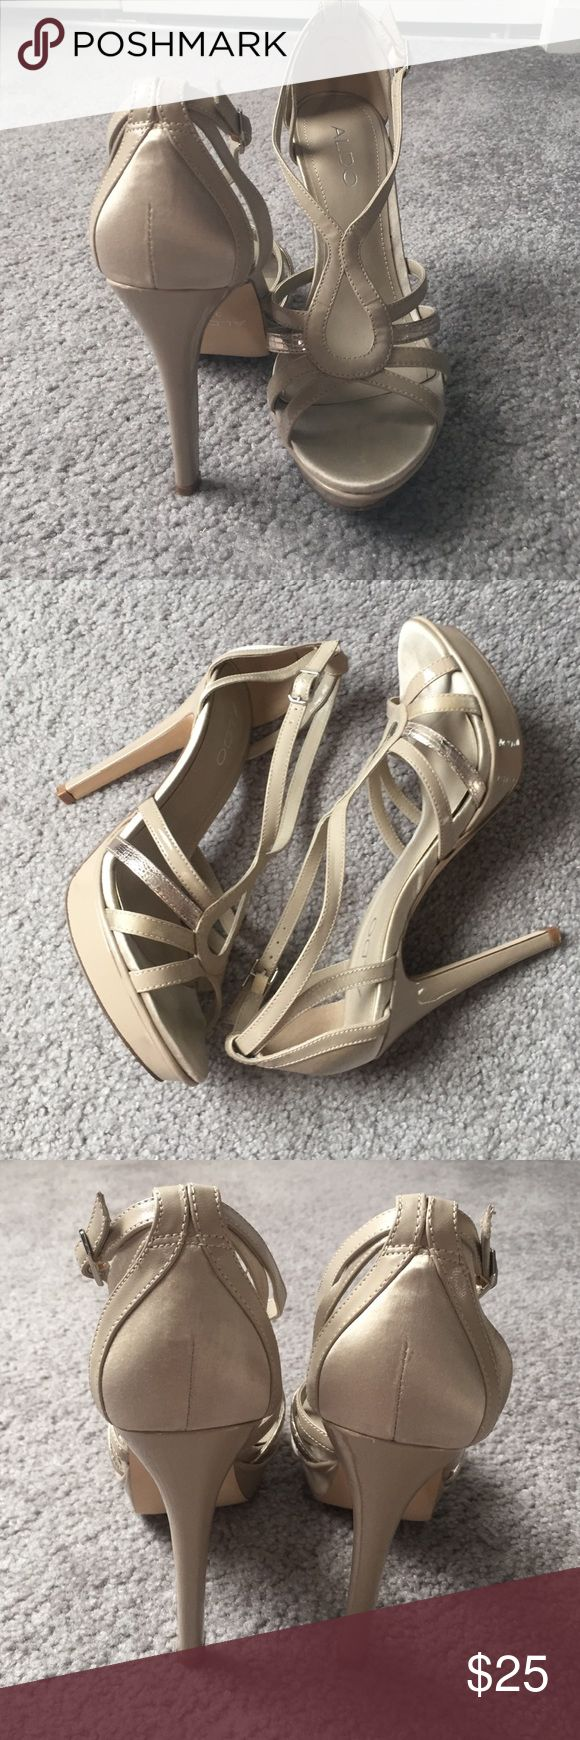 Aldo heels Beautiful strappy Aldo heels, this is a nude/champagne color. Only wore these once for a wedding. No scuffs or stains. Accepting all reasonable offers! Do not have the box. Heel height is 4 inches and platform comes in at 3/4. Aldo Shoes Heels